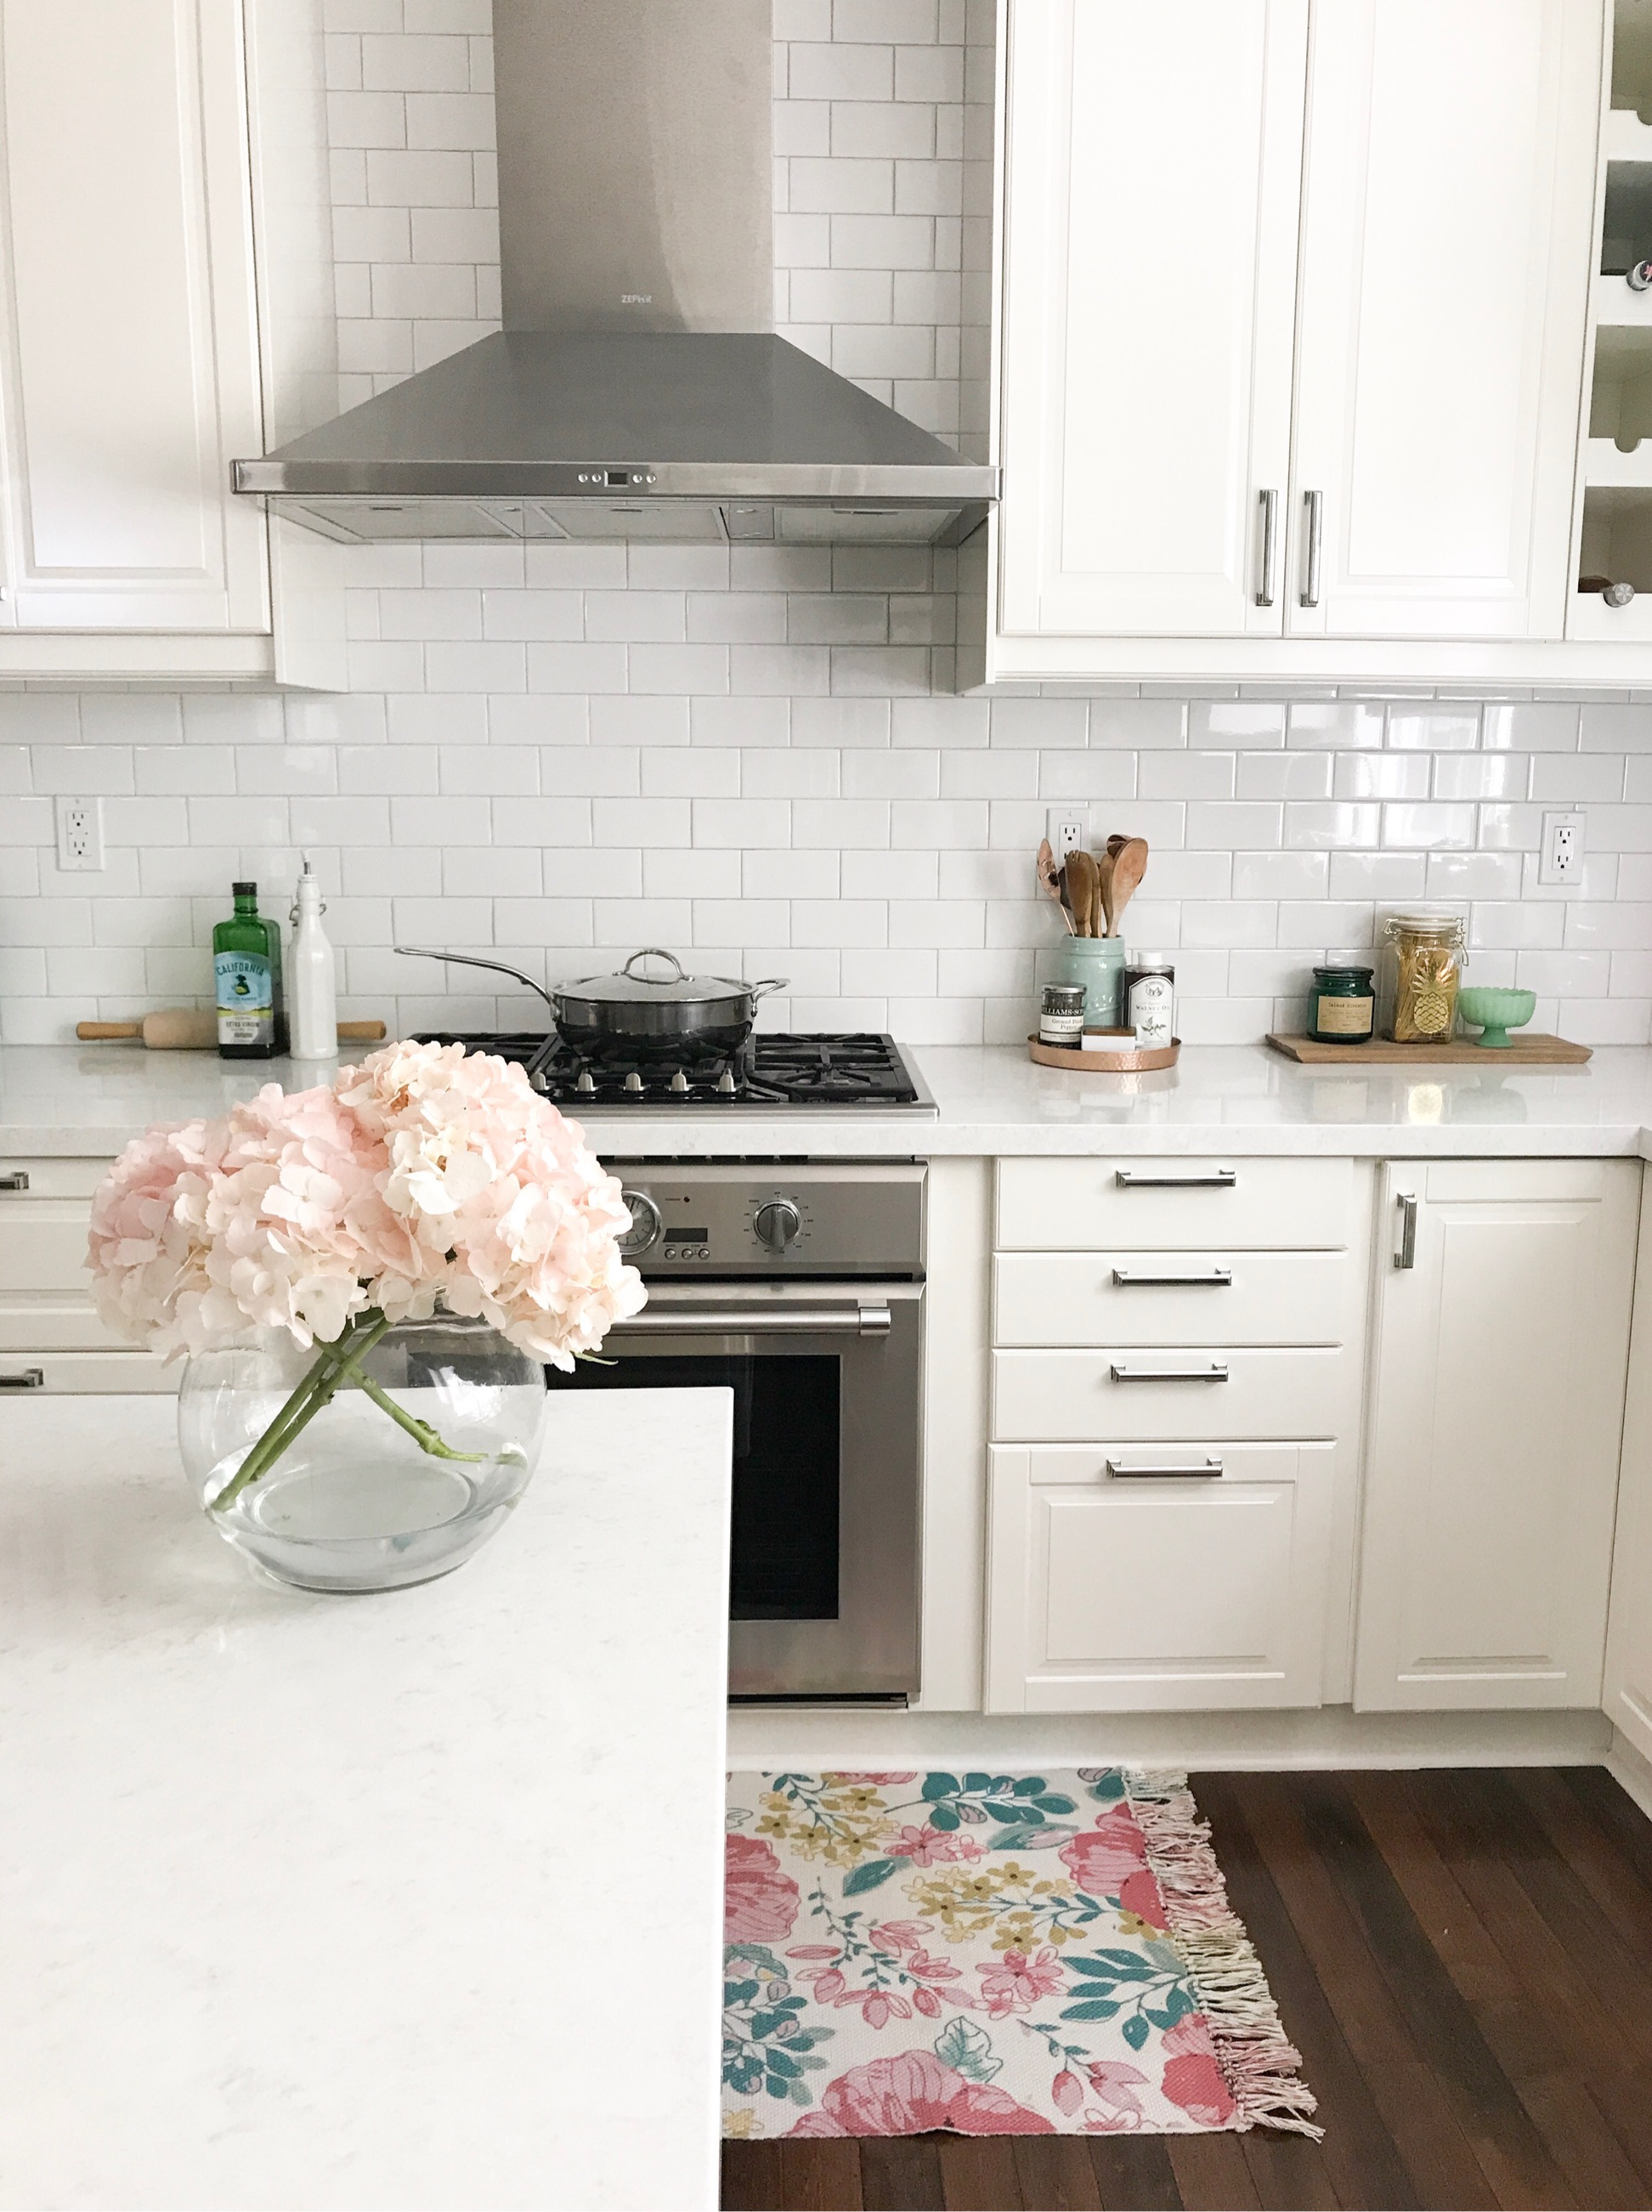 Ikea Kitchen Design Blog 13 Real Life Beautiful And Inspirational Ikea Kitchens